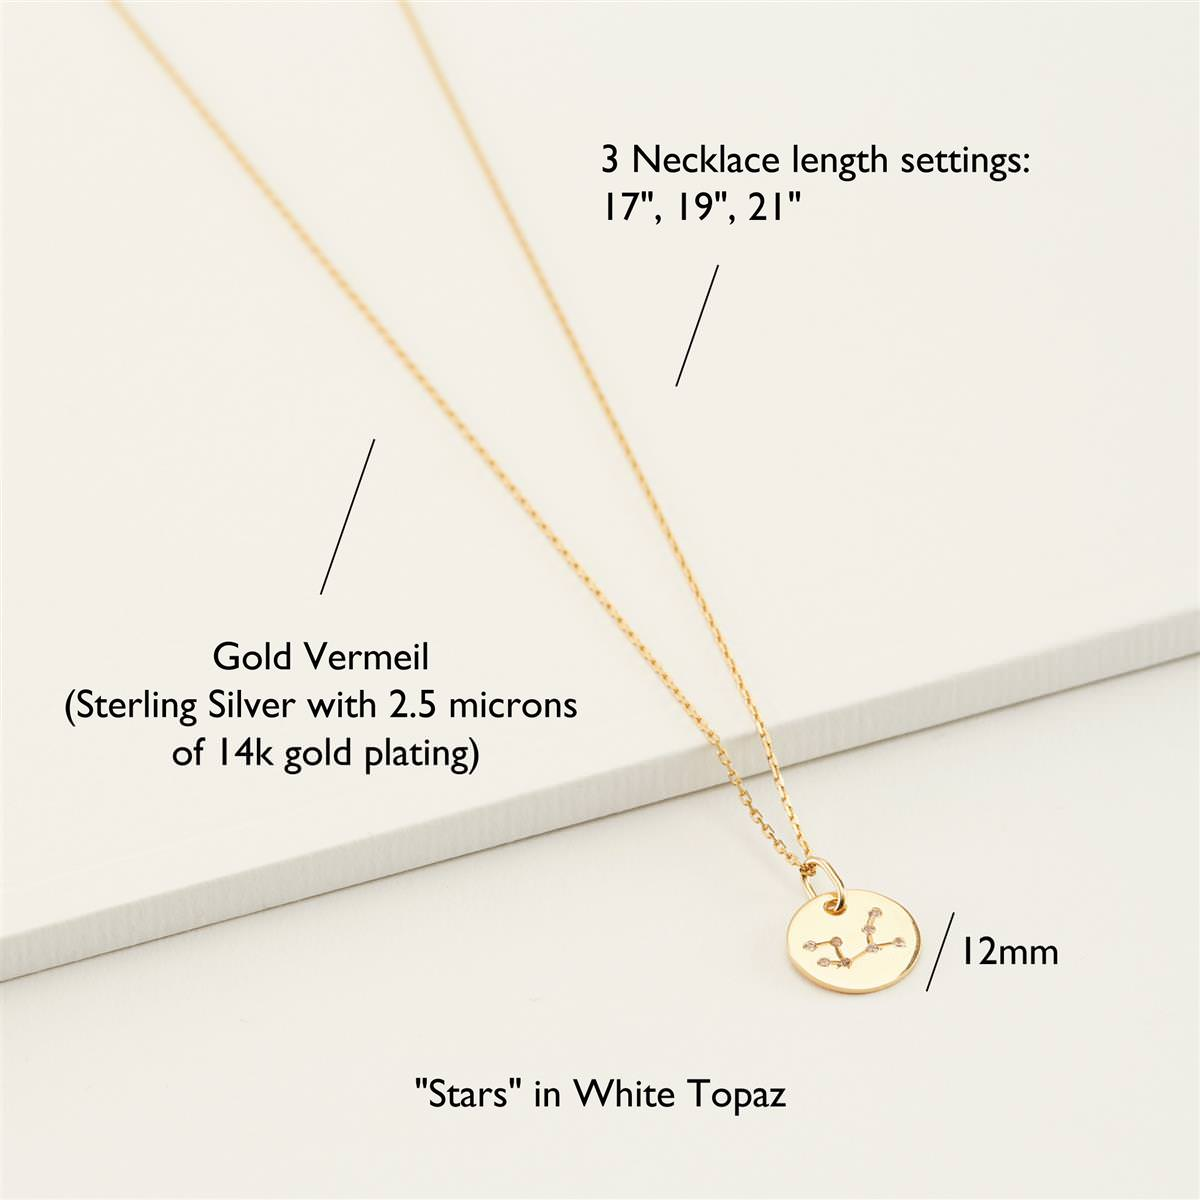 Gold Vermeil, Virgo